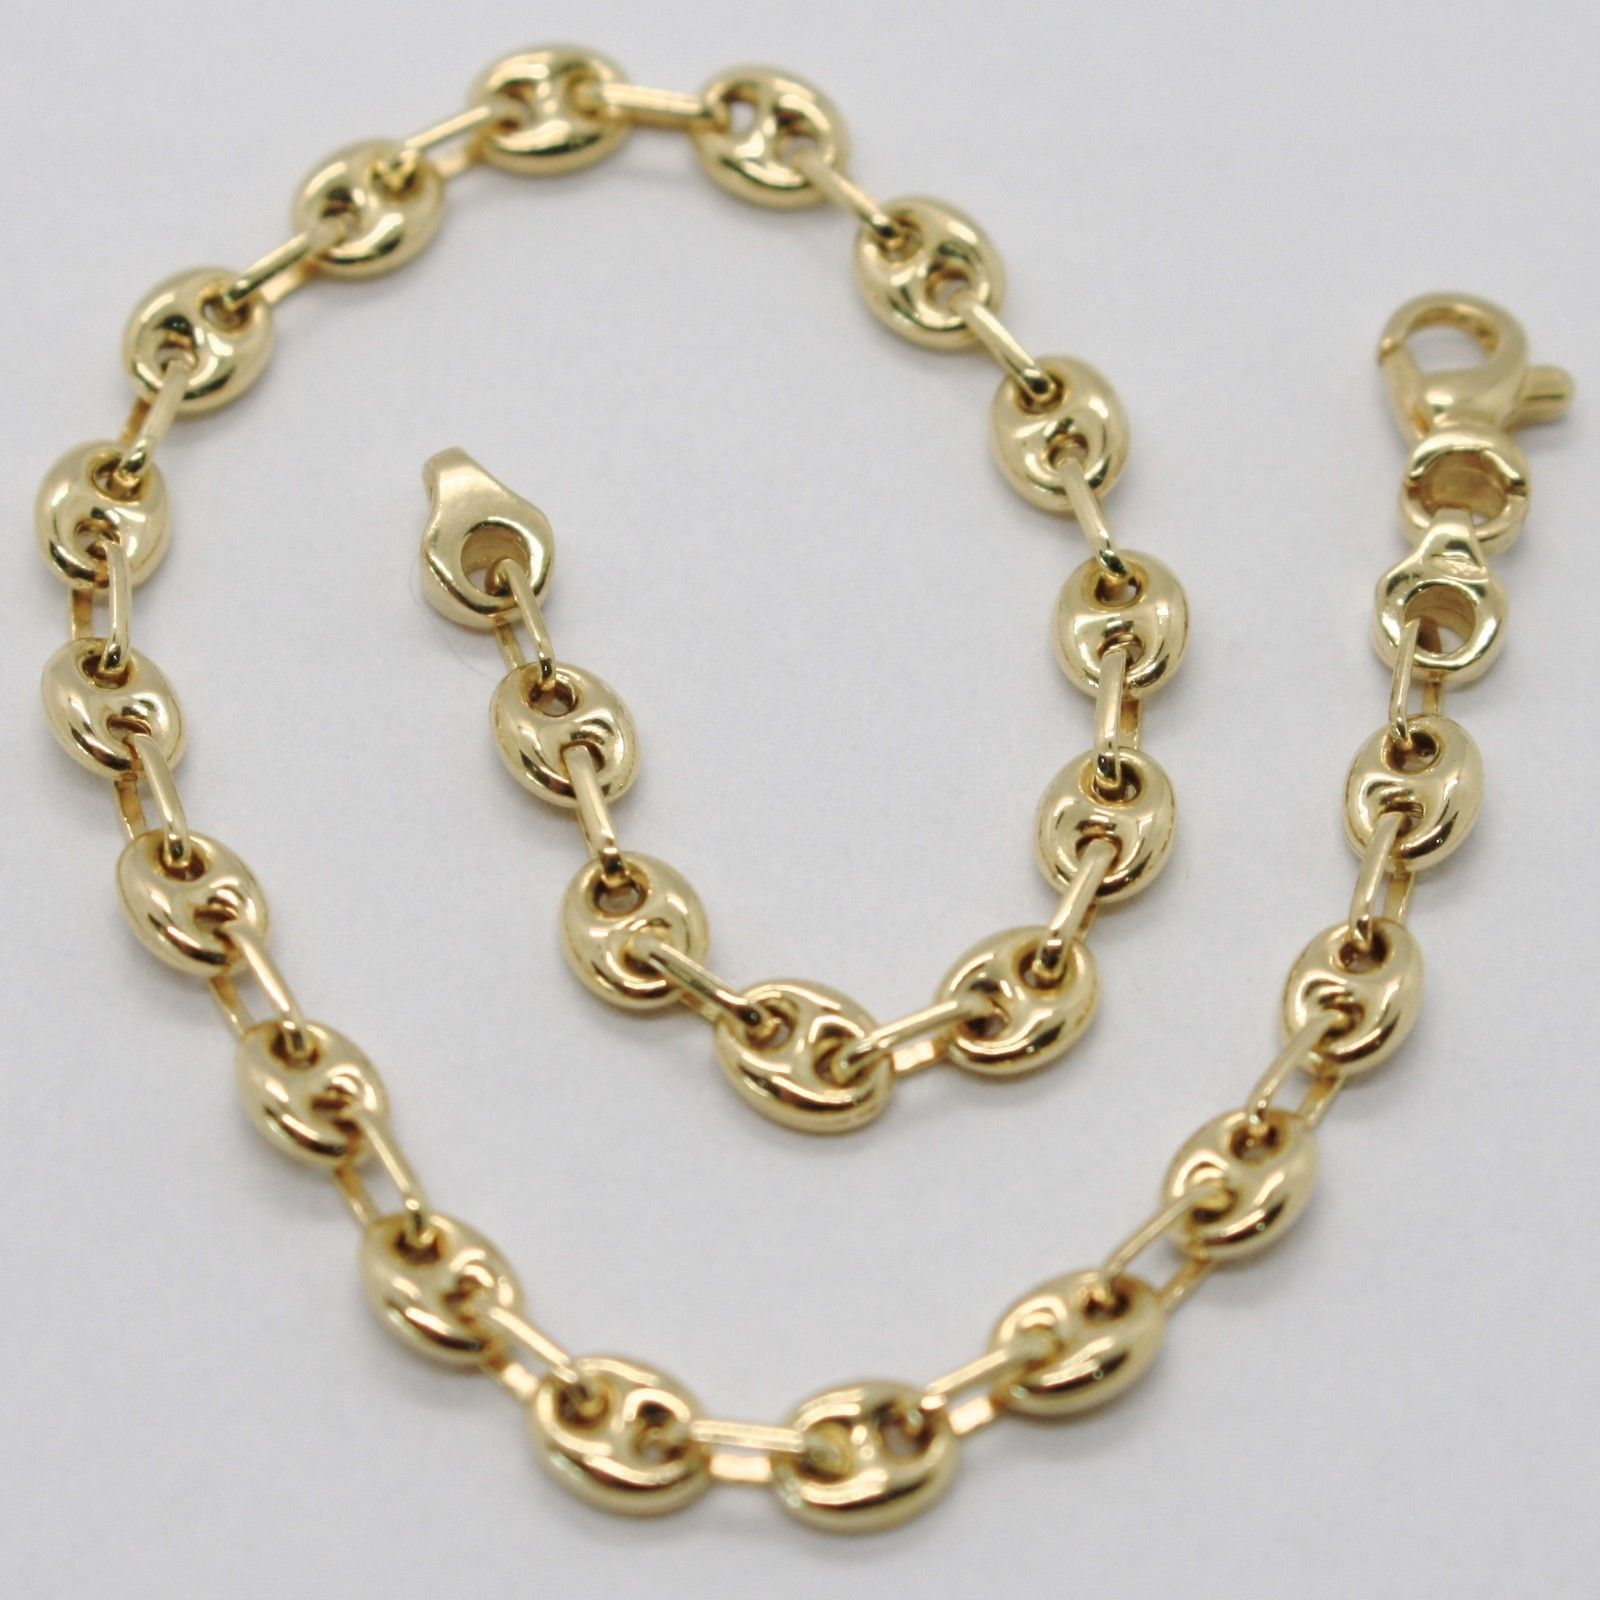 18K YELLOW GOLD SOLID BRACELET OVAL MARINER 4 MM LINK, 7.3 INCHES, MADE IN ITALY